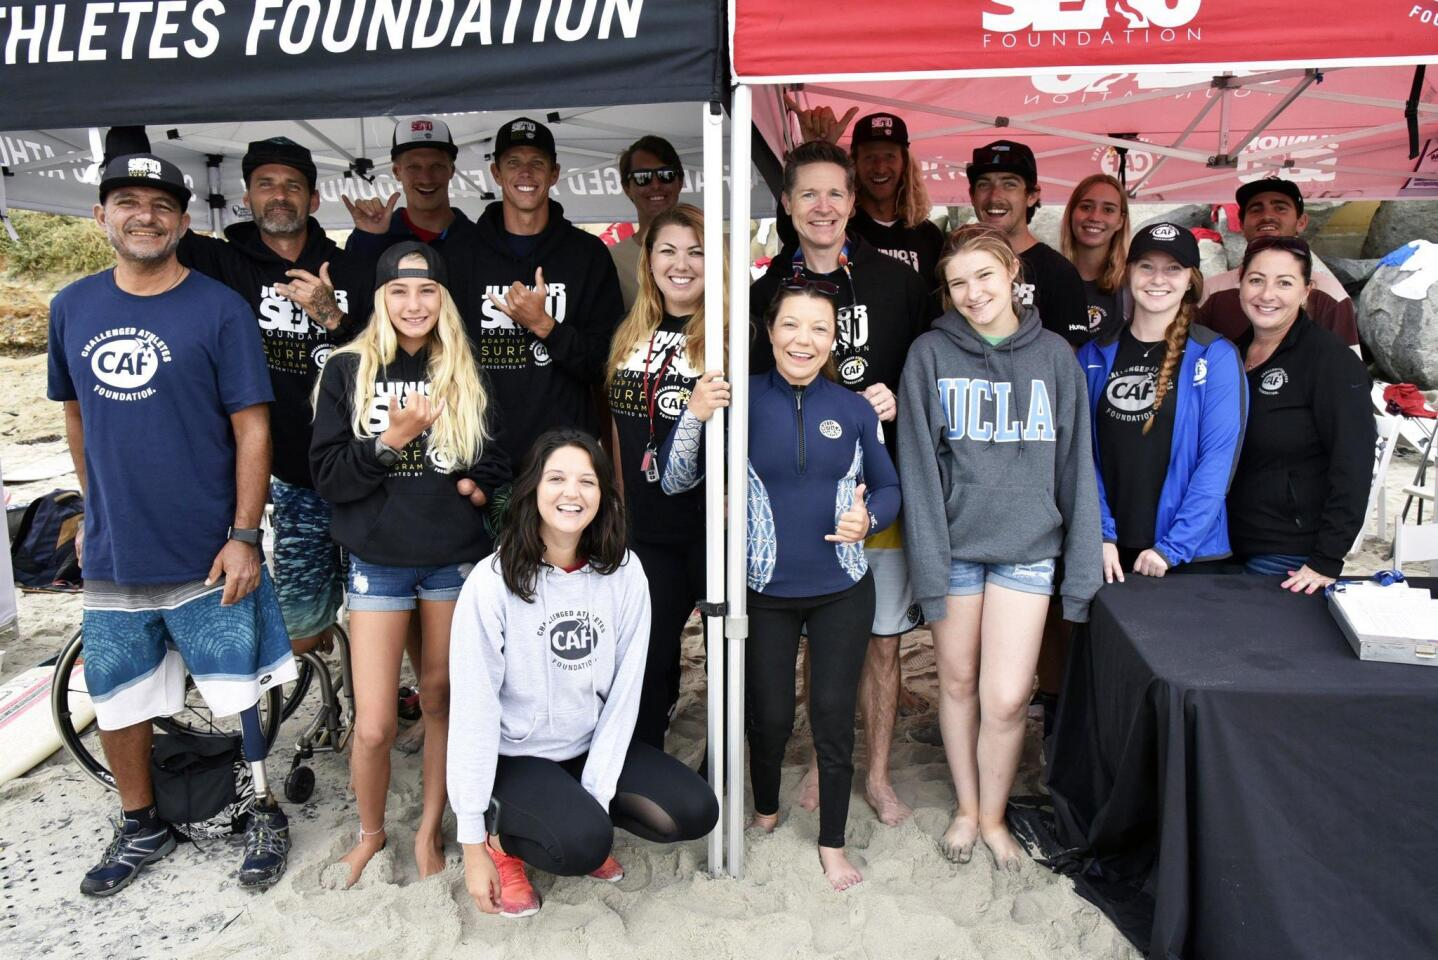 The Challenged Athletes Foundation surfers and volunteers (www.challengedathletes.org)